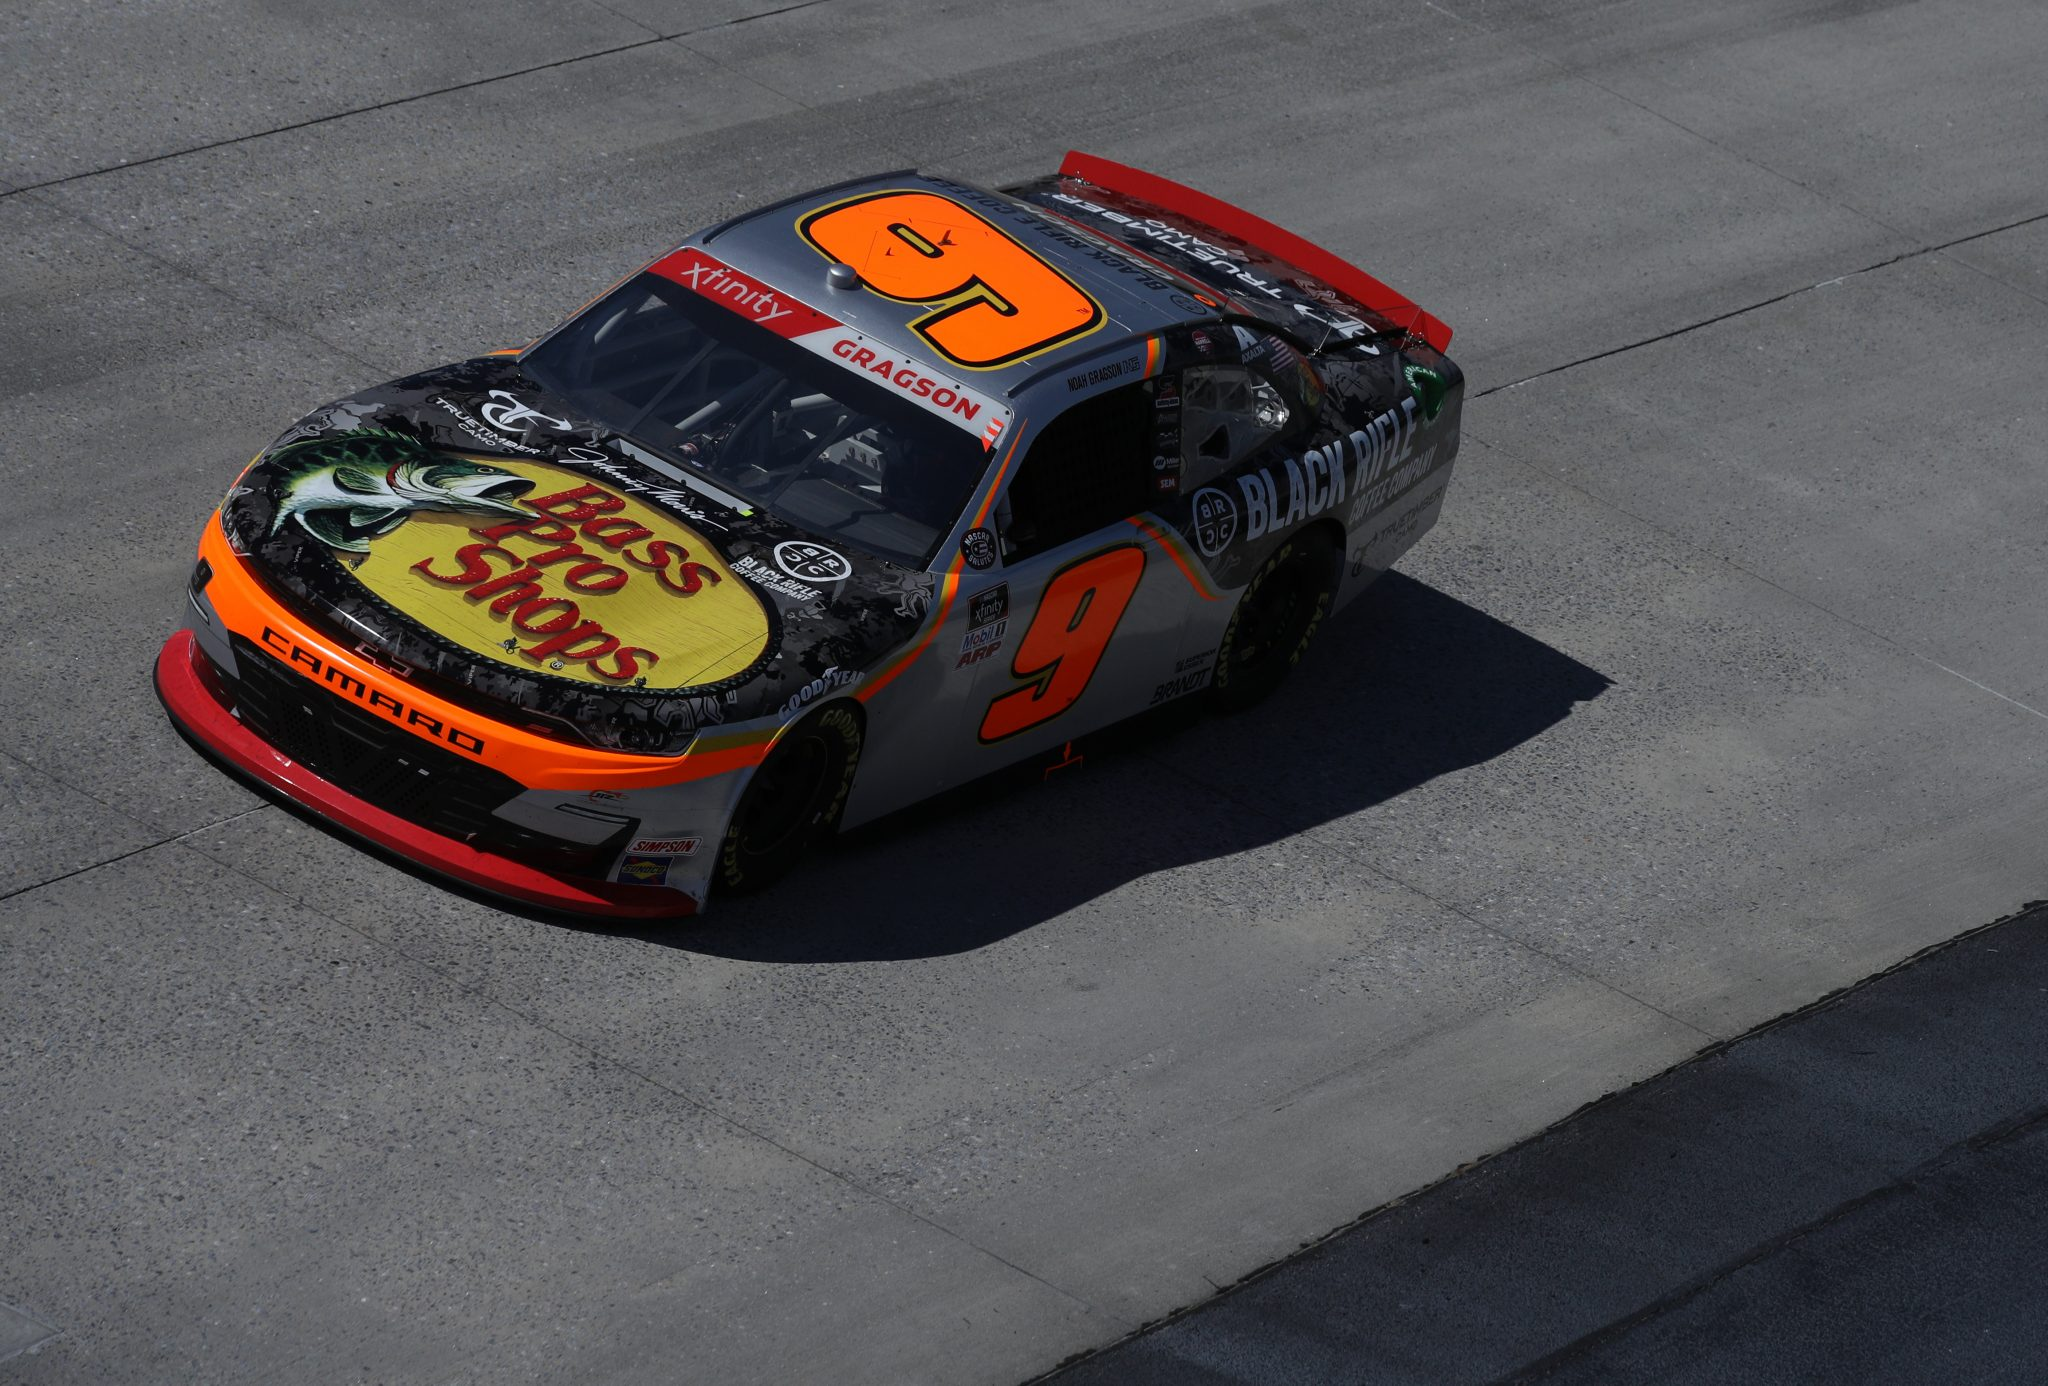 DOVER, DELAWARE - MAY 15: Noah Gragson, driver of the #9 BassProShops/TrueTimber/BRCC Chevrolet, races during the NASCAR Xfinity Series Drydene 200 race at Dover International Speedway on May 15, 2021 in Dover, Delaware. (Photo by Sean Gardner/Getty Images) | Getty Images